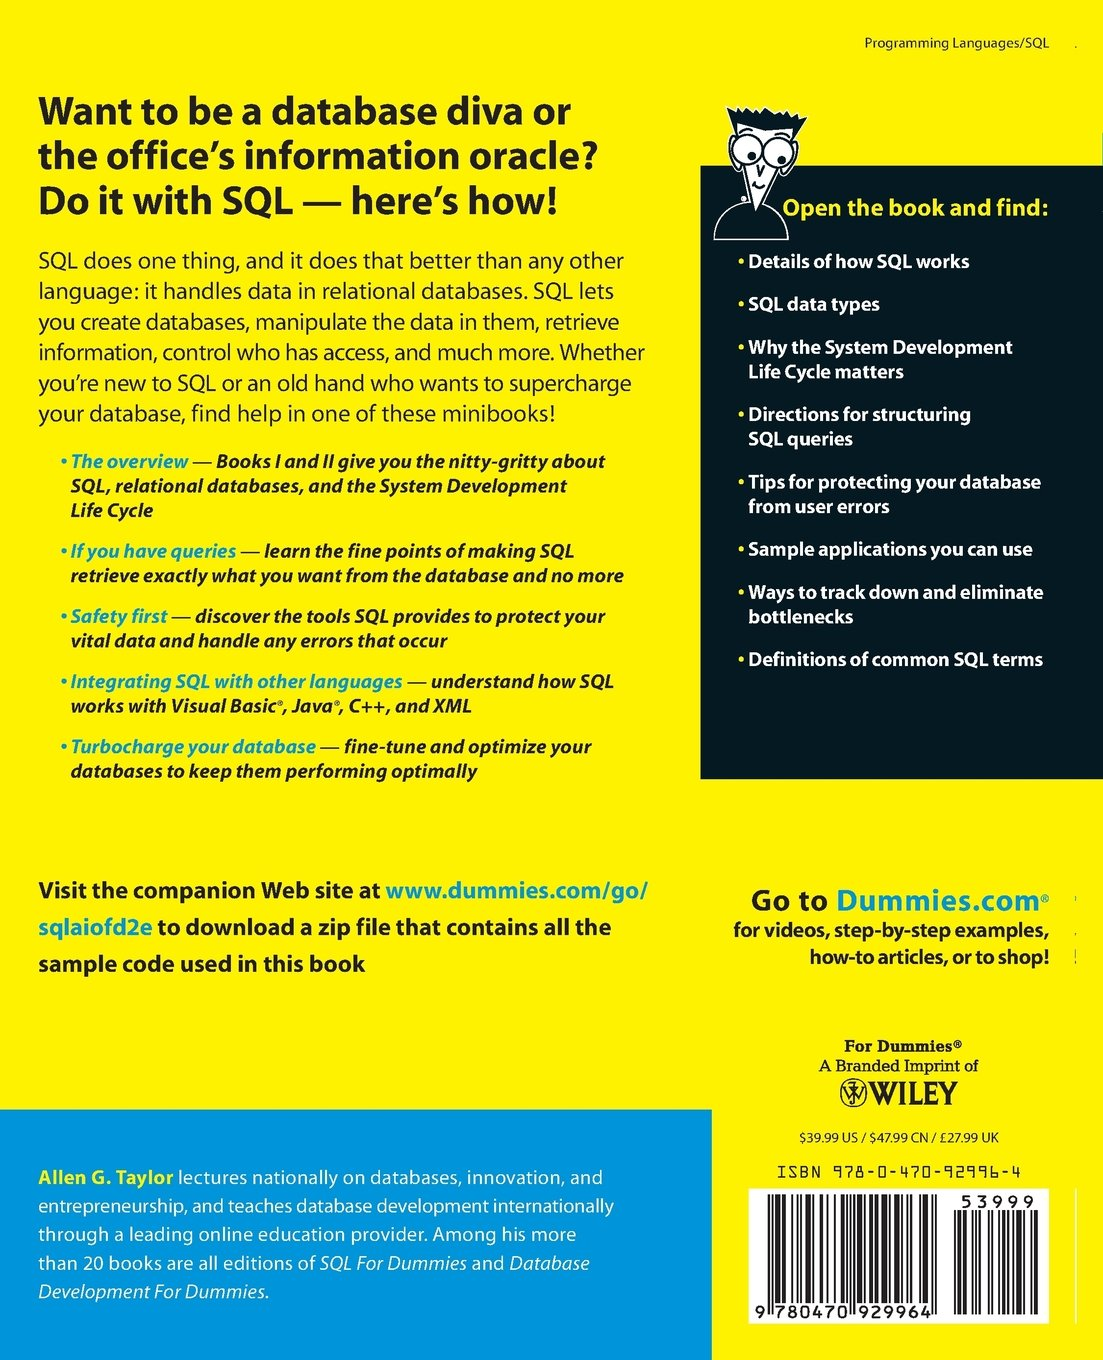 SQL All-in-One For Dummies: Amazon.co.uk: Allen G. Taylor: 8581000054368:  Books